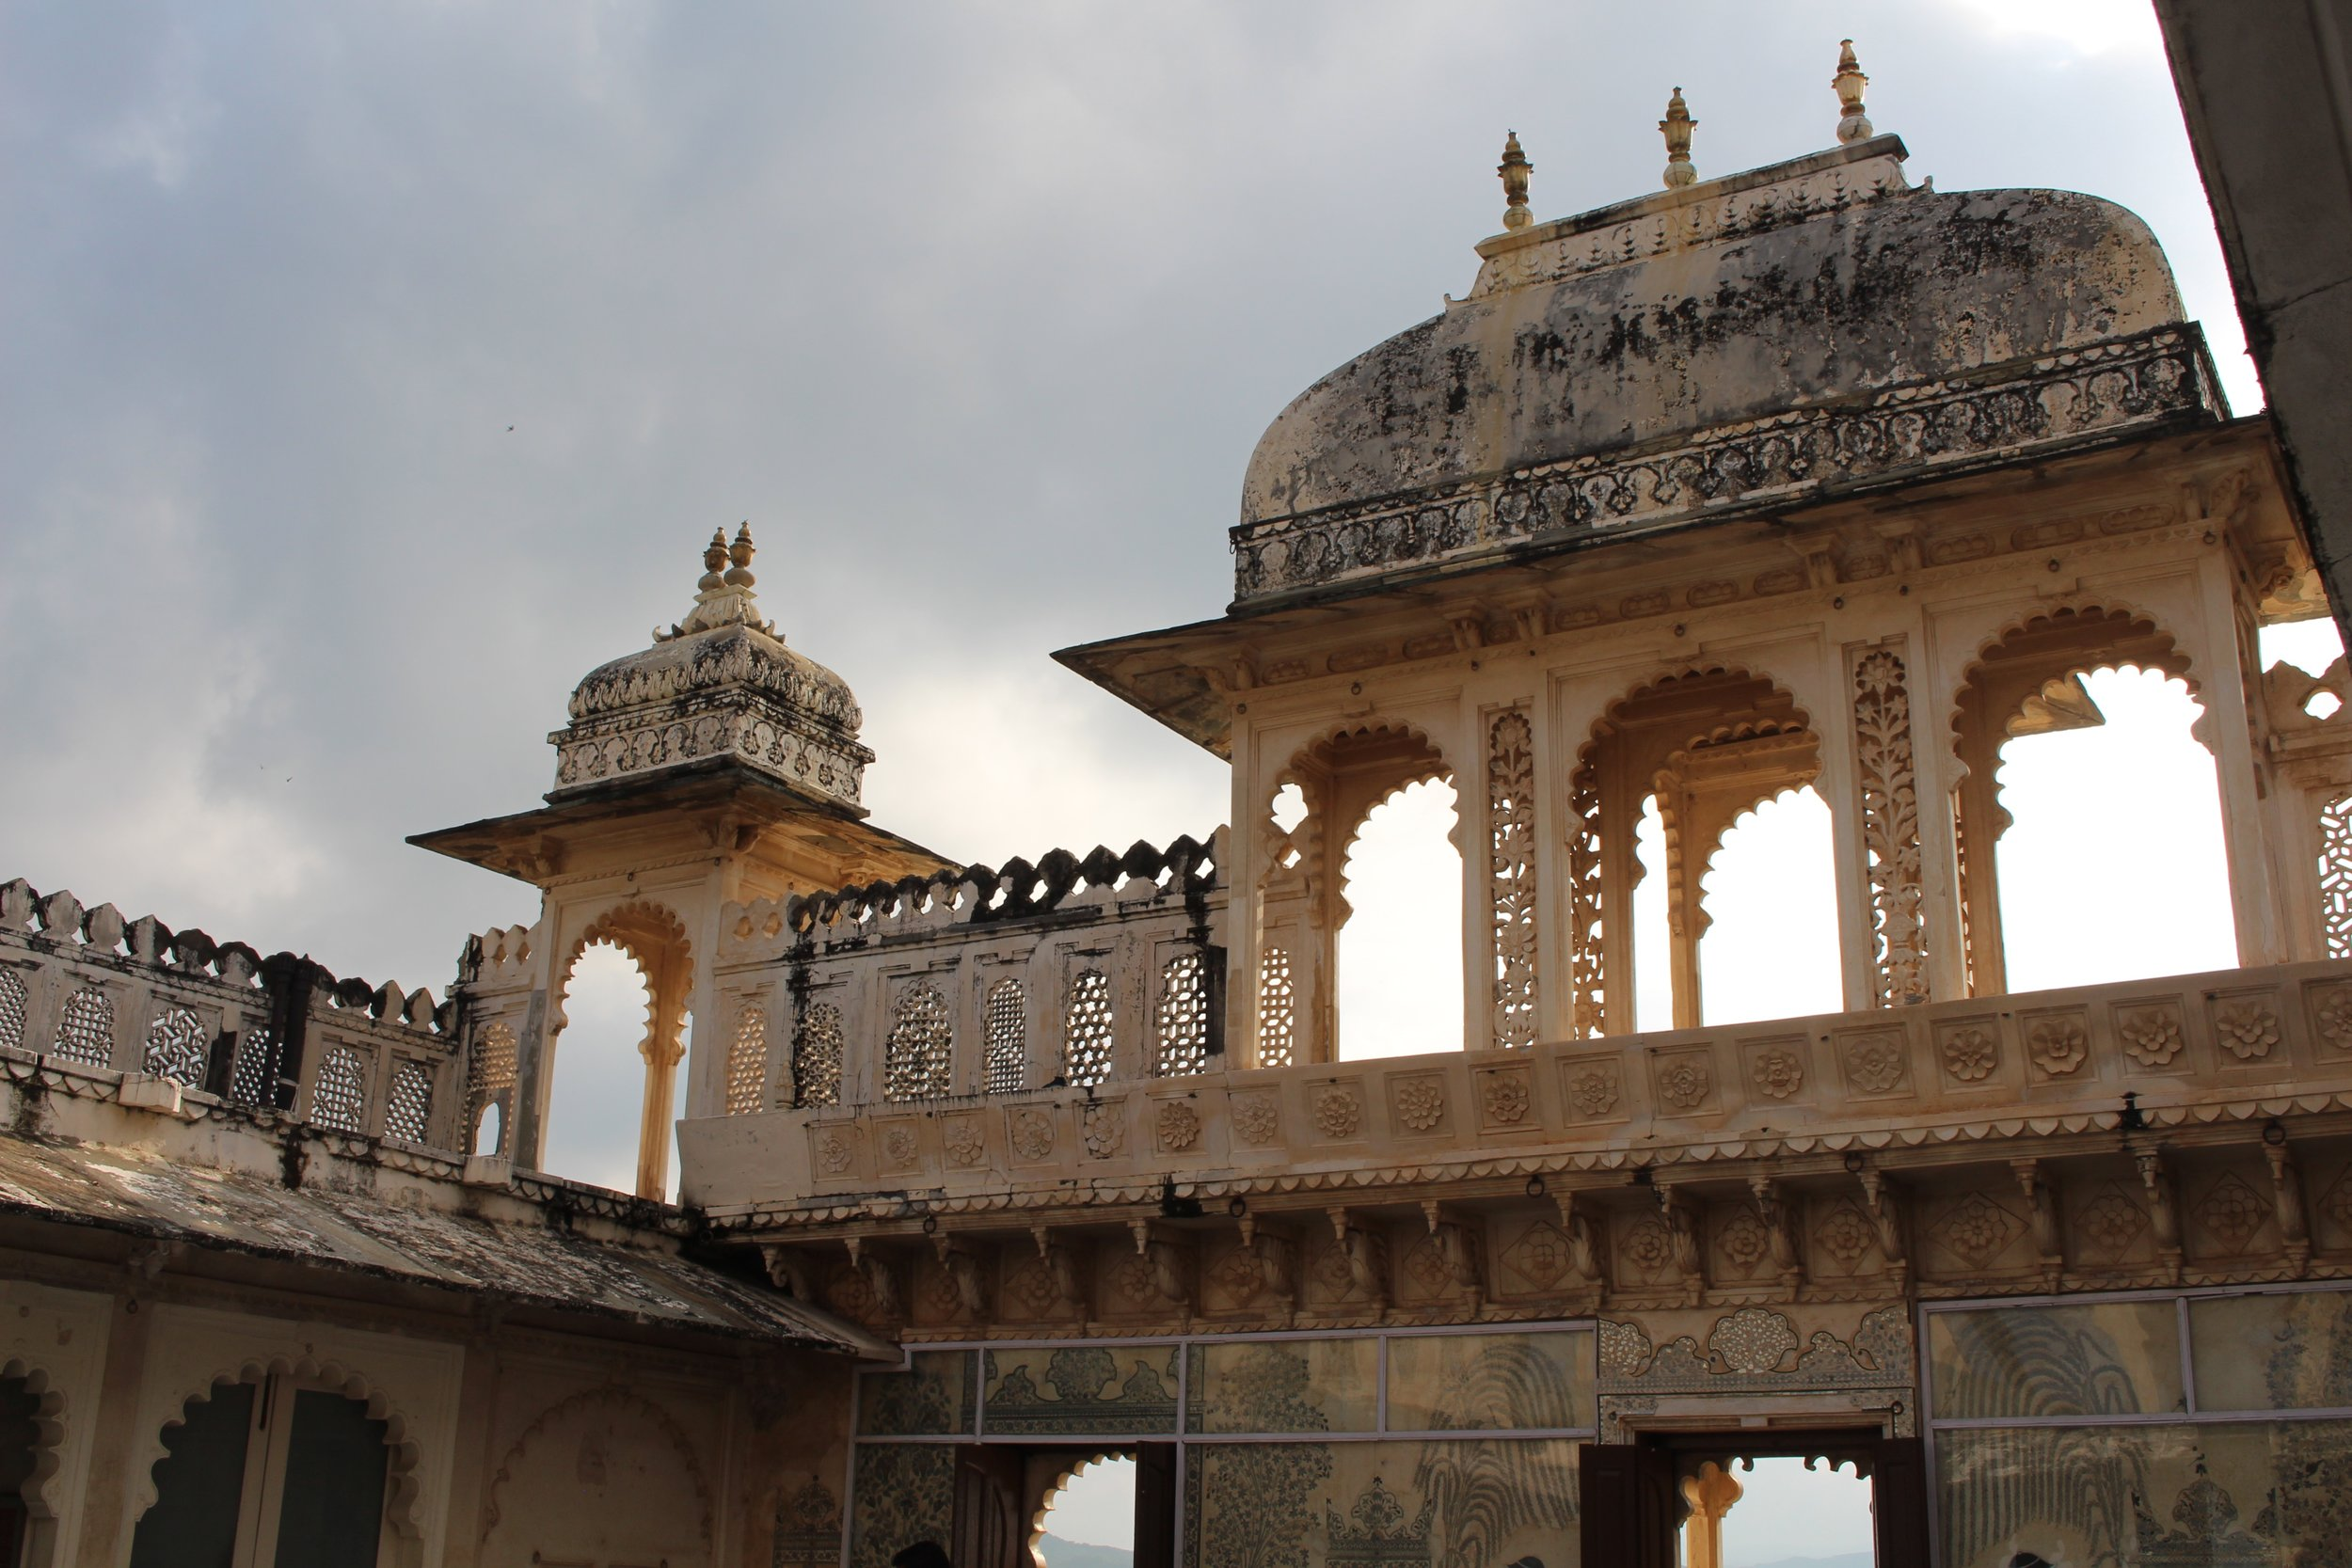 This is a shot from inside the palace in Udaipur